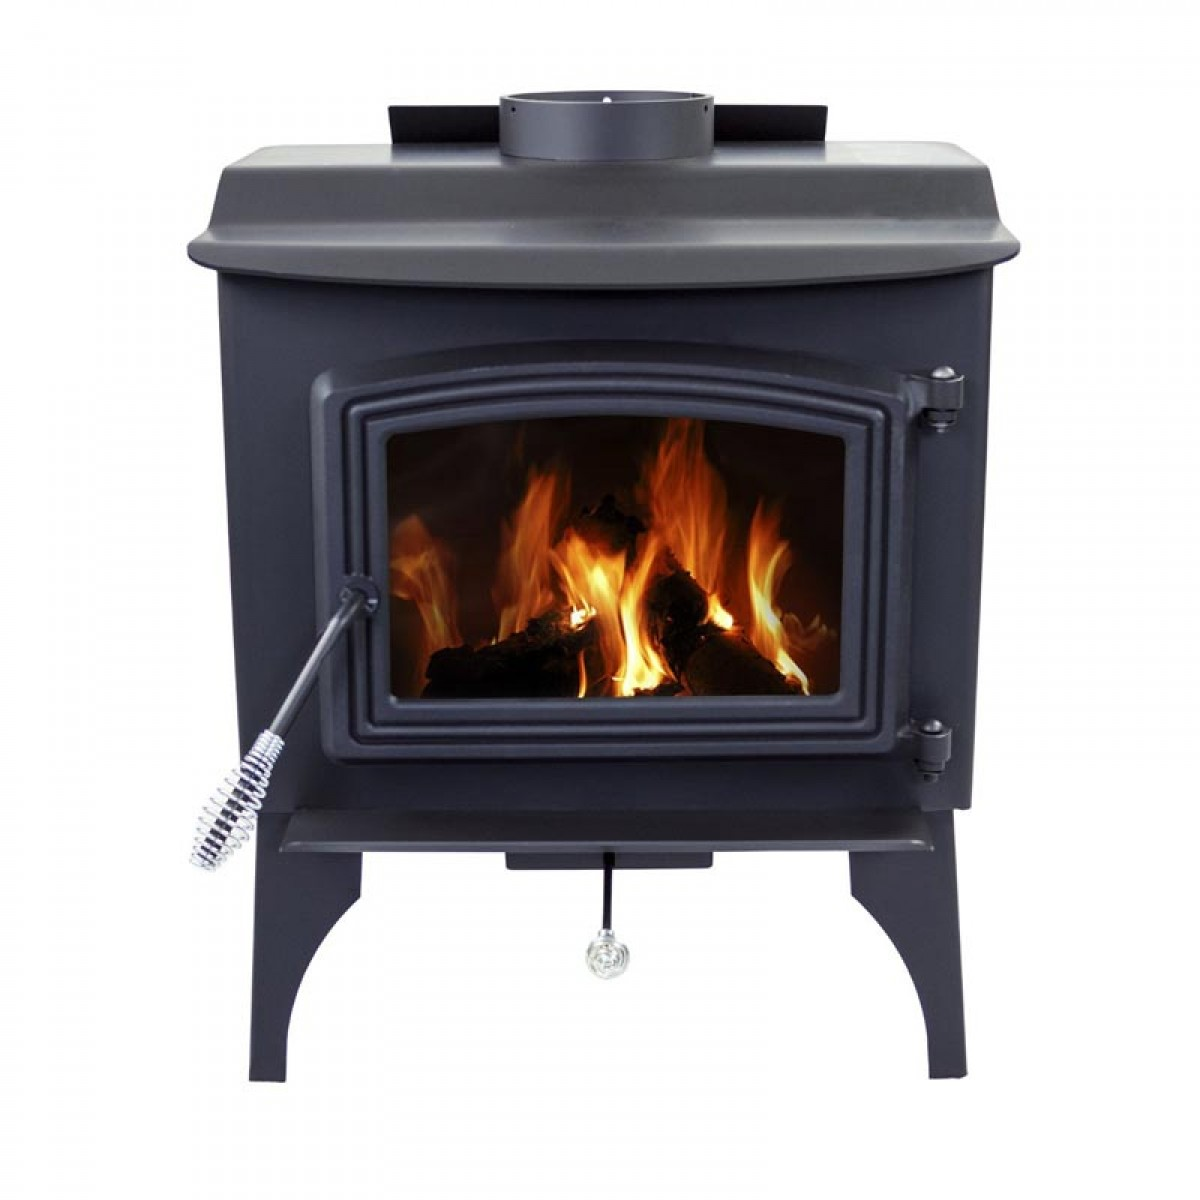 Pleasant hearth small wood burning stove with legs ws 2417 Wood burning stoves